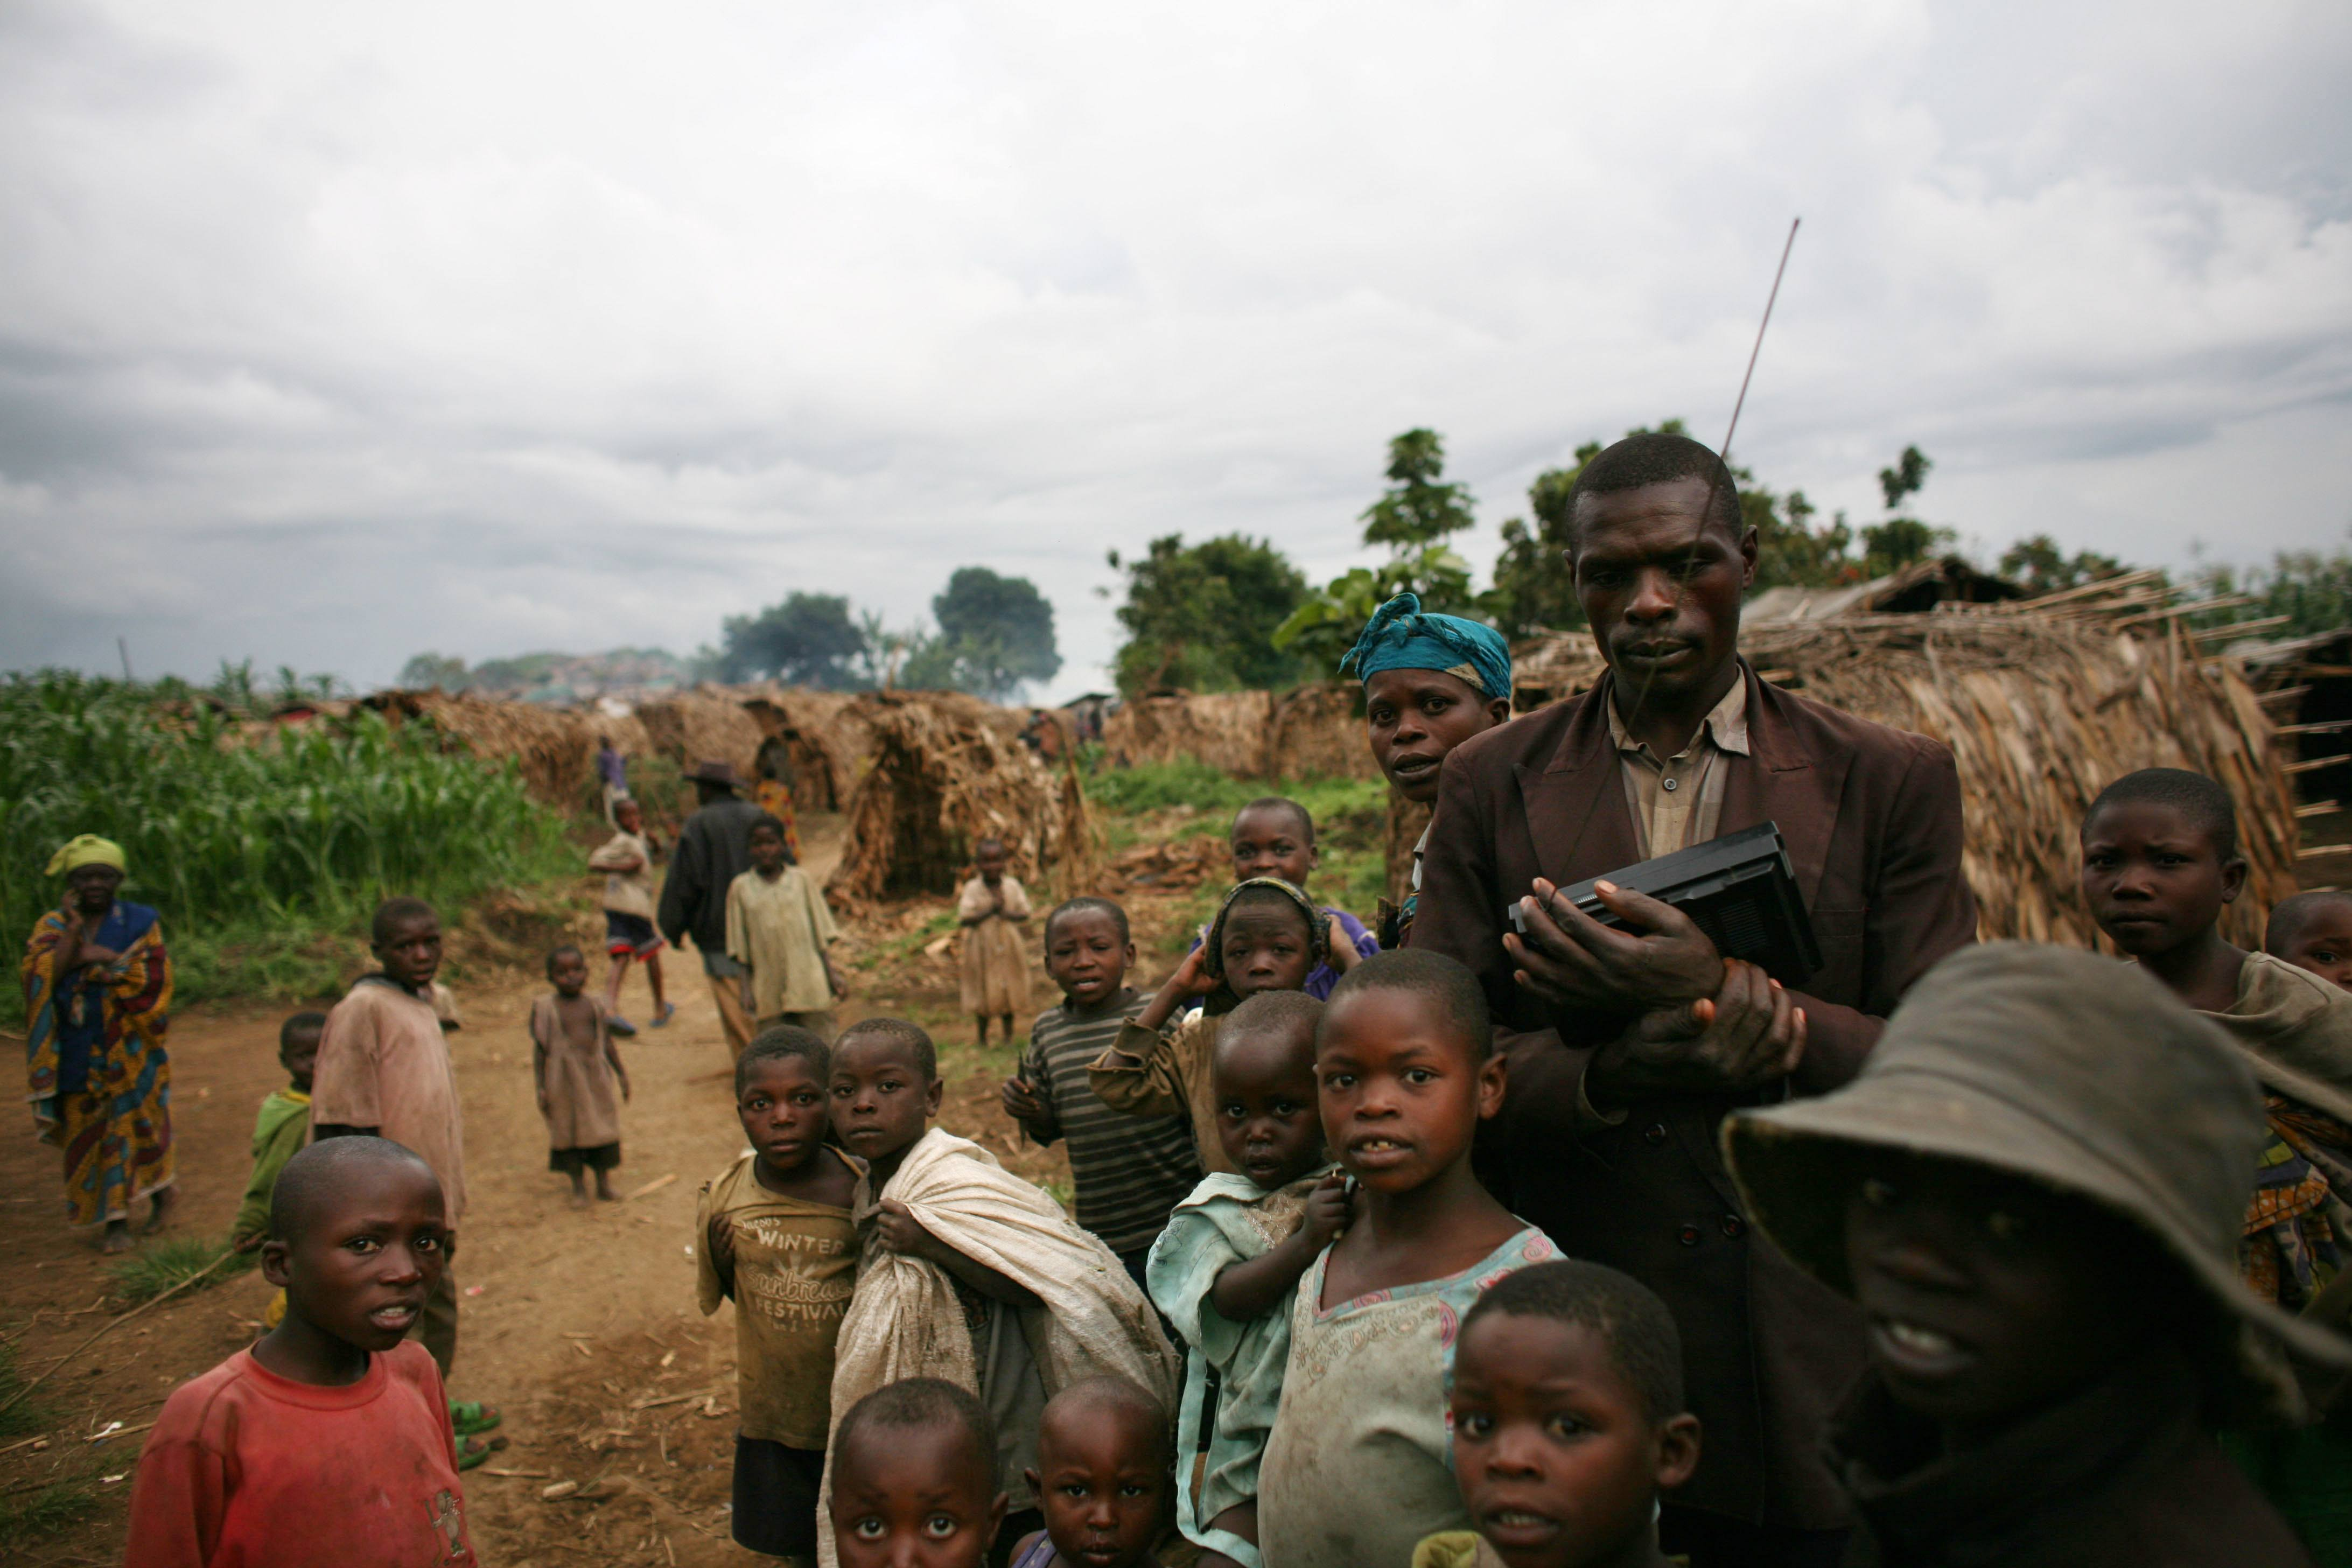 Refugees wait near their shelters in the Democratic Republic of the Congo